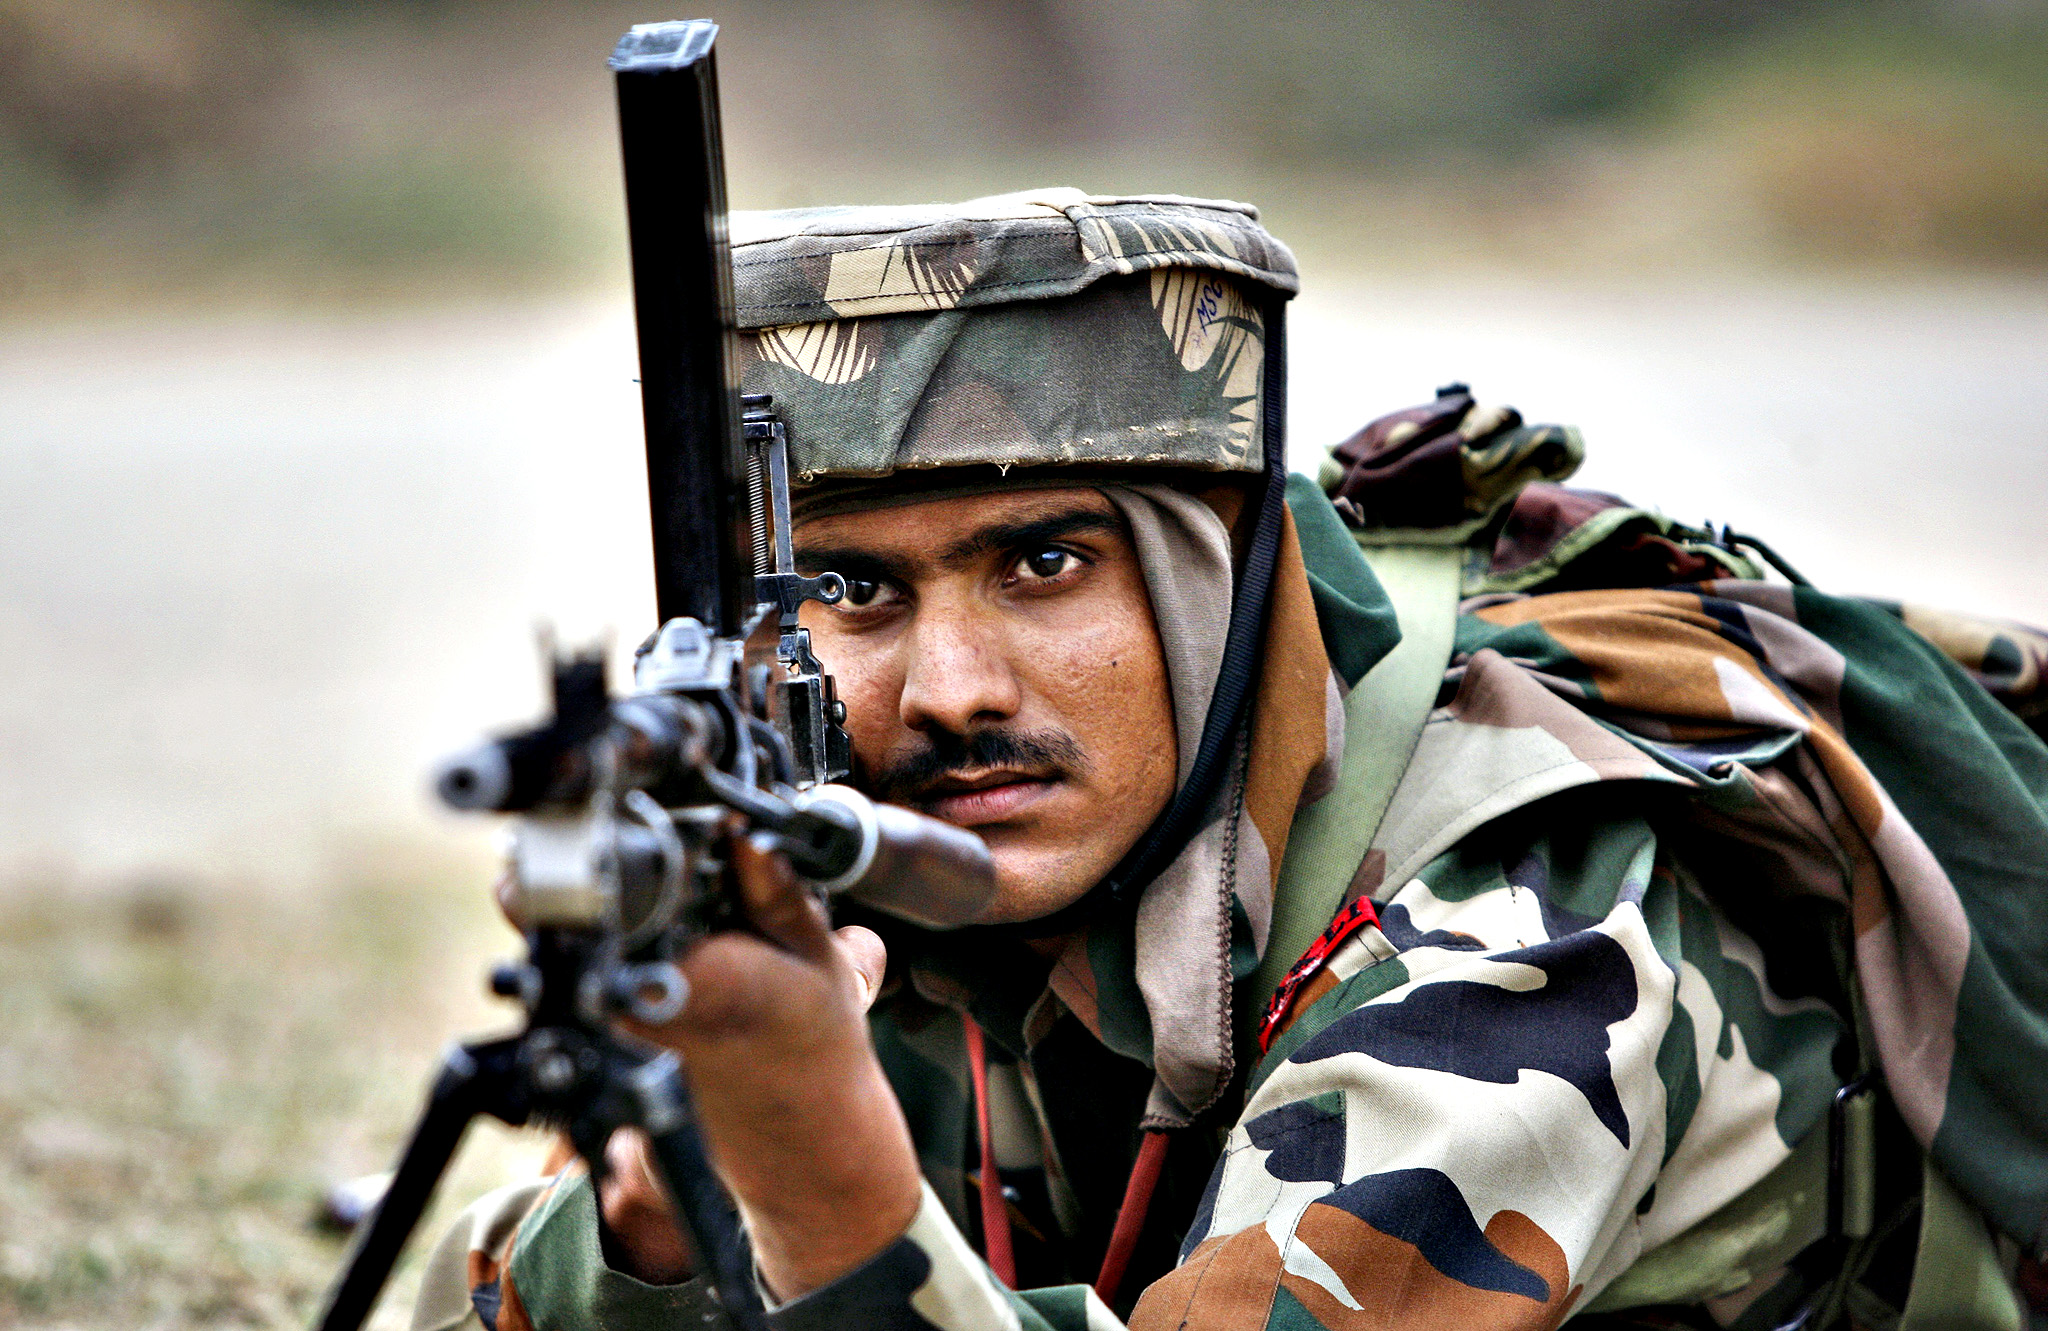 about indian army Latest indian army news, photos, blogposts, videos and wallpapers explore indian army profile at times of india.